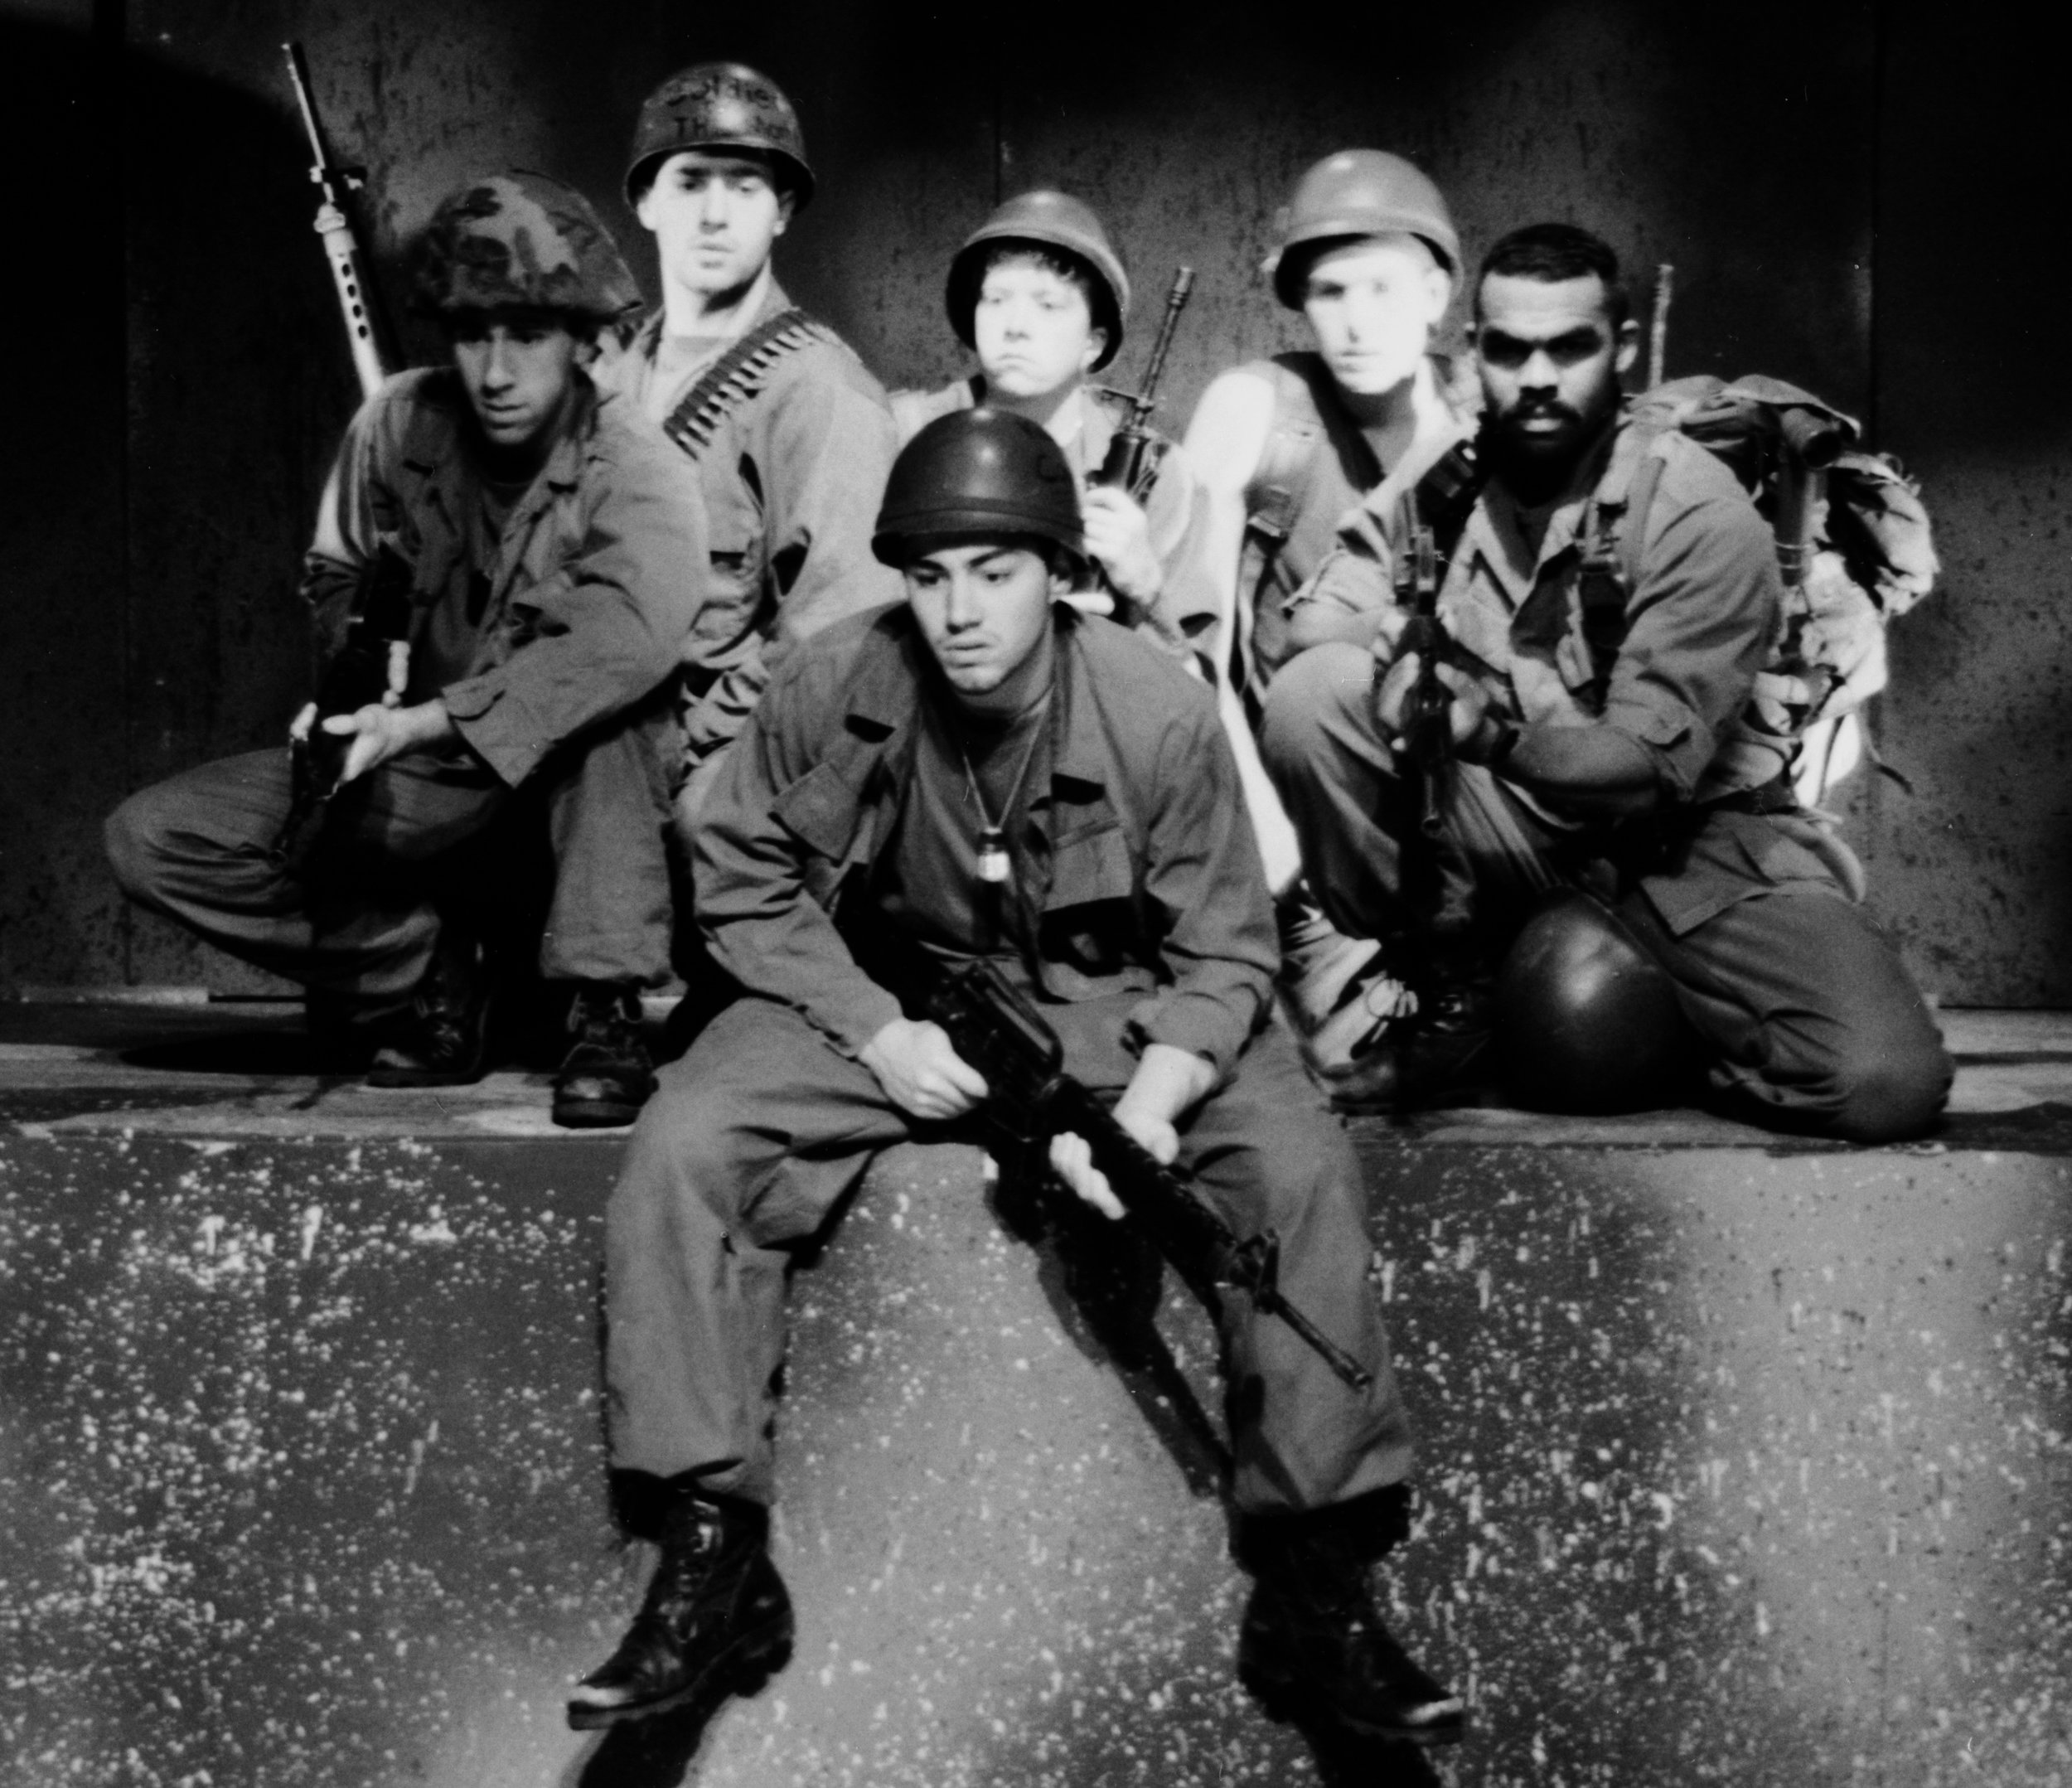 Craig Bilsky (Professor), Scott Donnelly (Little John), Chris Solari (Scooter), Scott Freeburg (Baby San), William Vogt (Dinky Dau), and Gene Fereaud in Draw the Sneck Productions'1996 | 1997 productions of  Tracers , directed by John Drouillard.  Photo by Paul Backer.